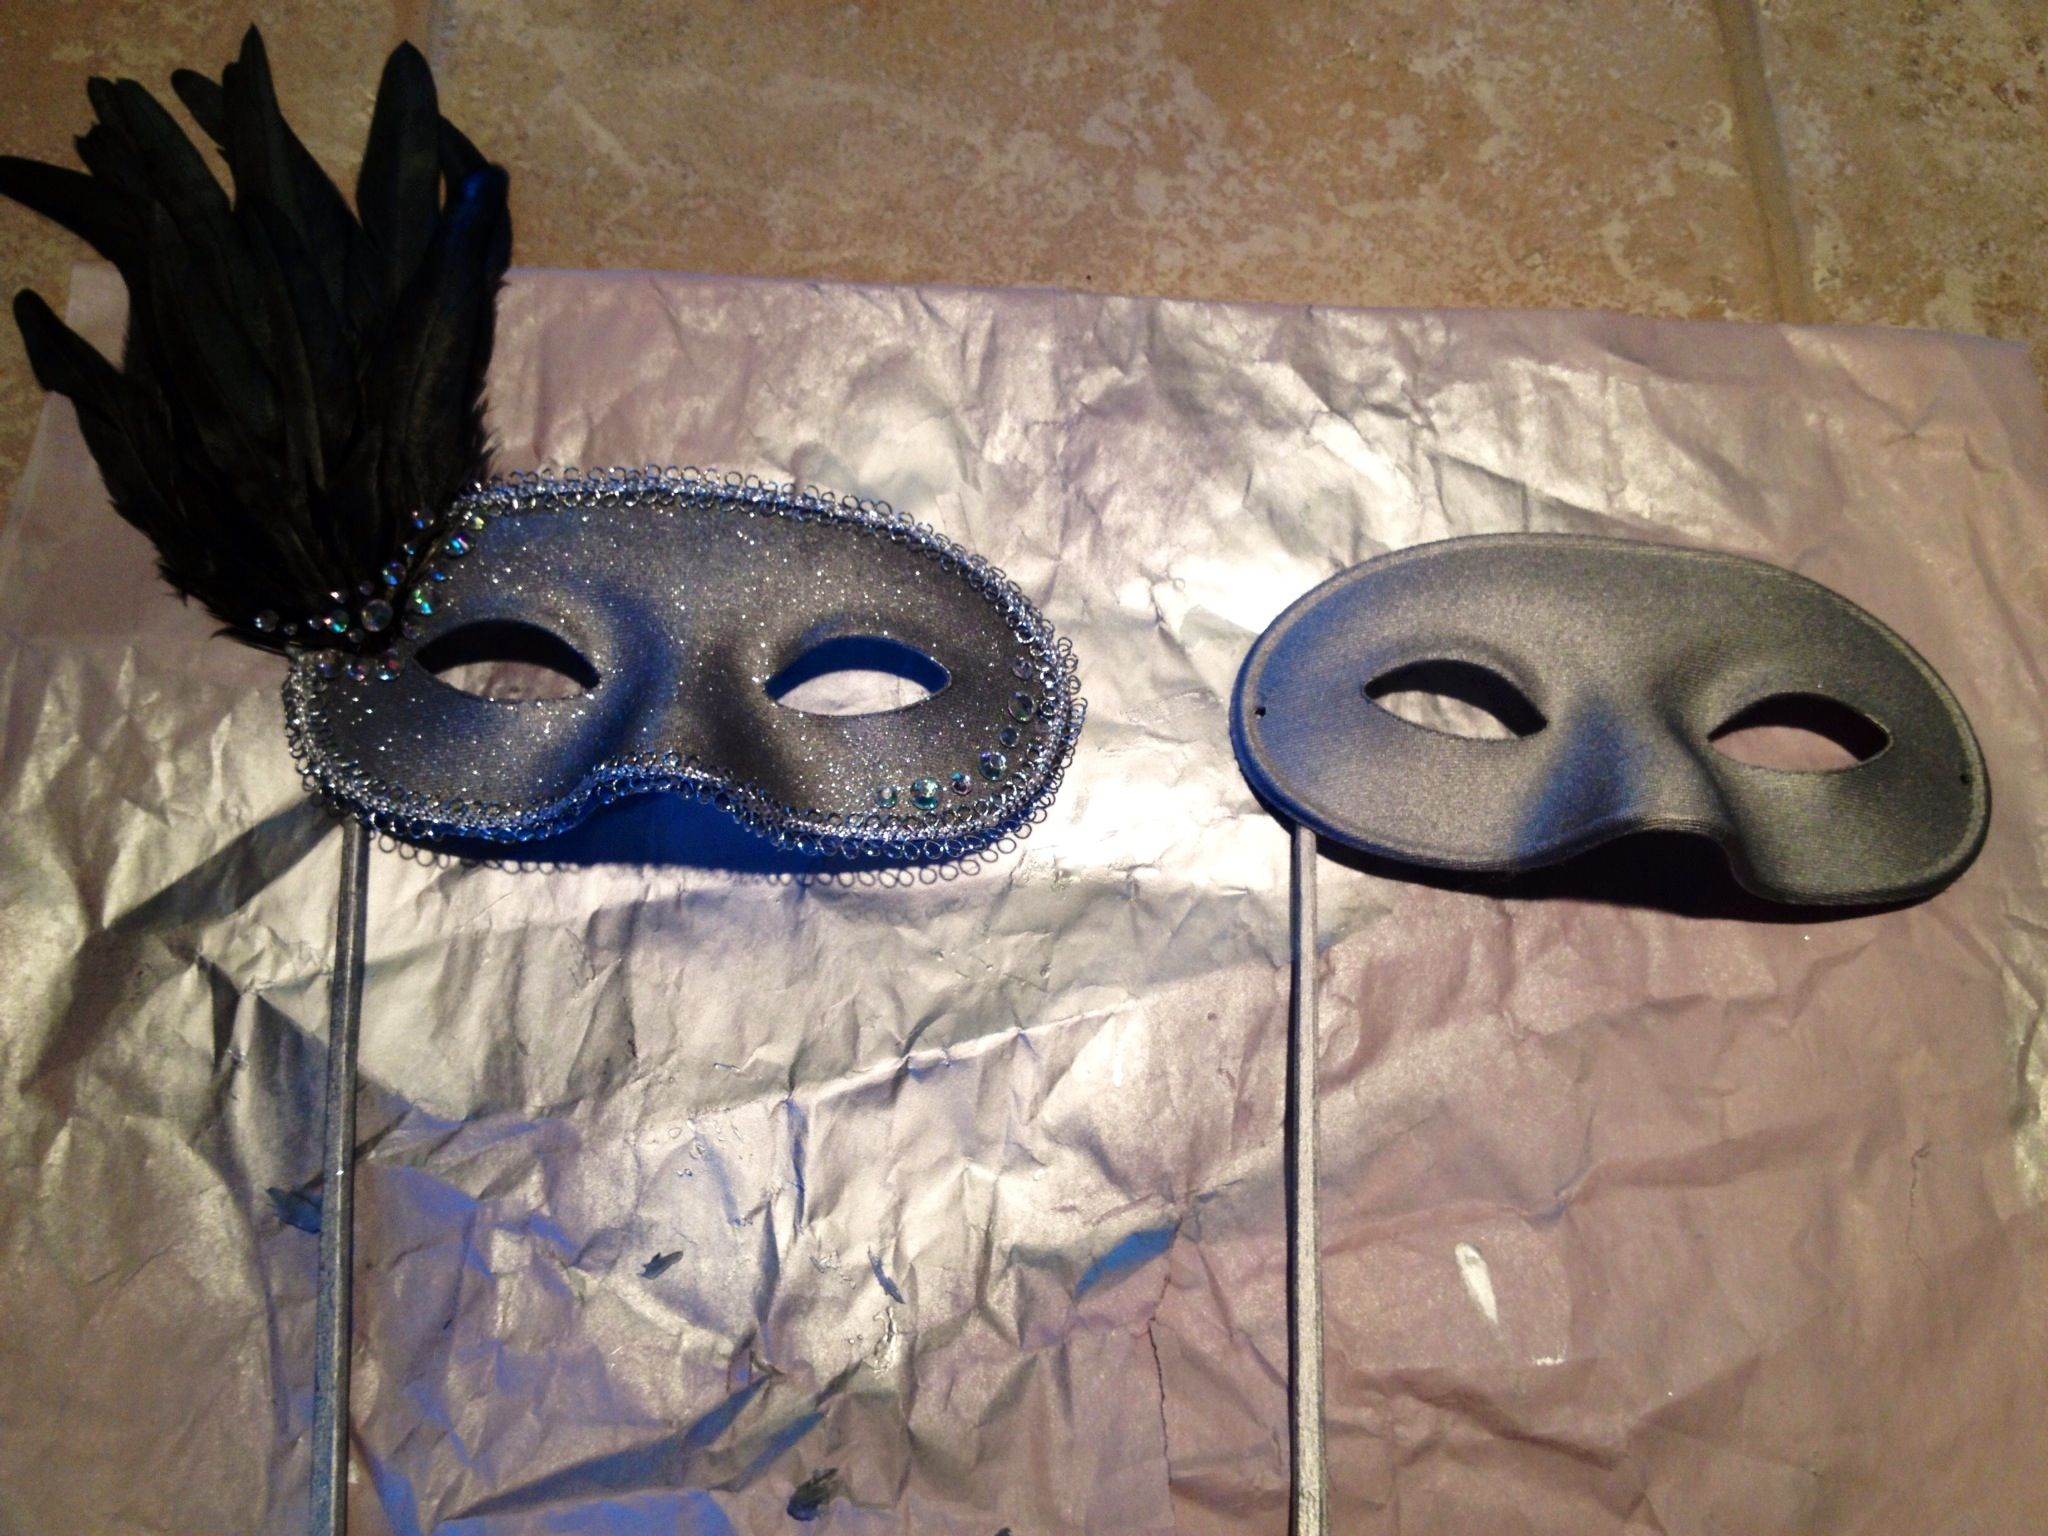 White Masks To Decorate Diy Masquerade Maskplain White Mask Spray Paint Silver Silver